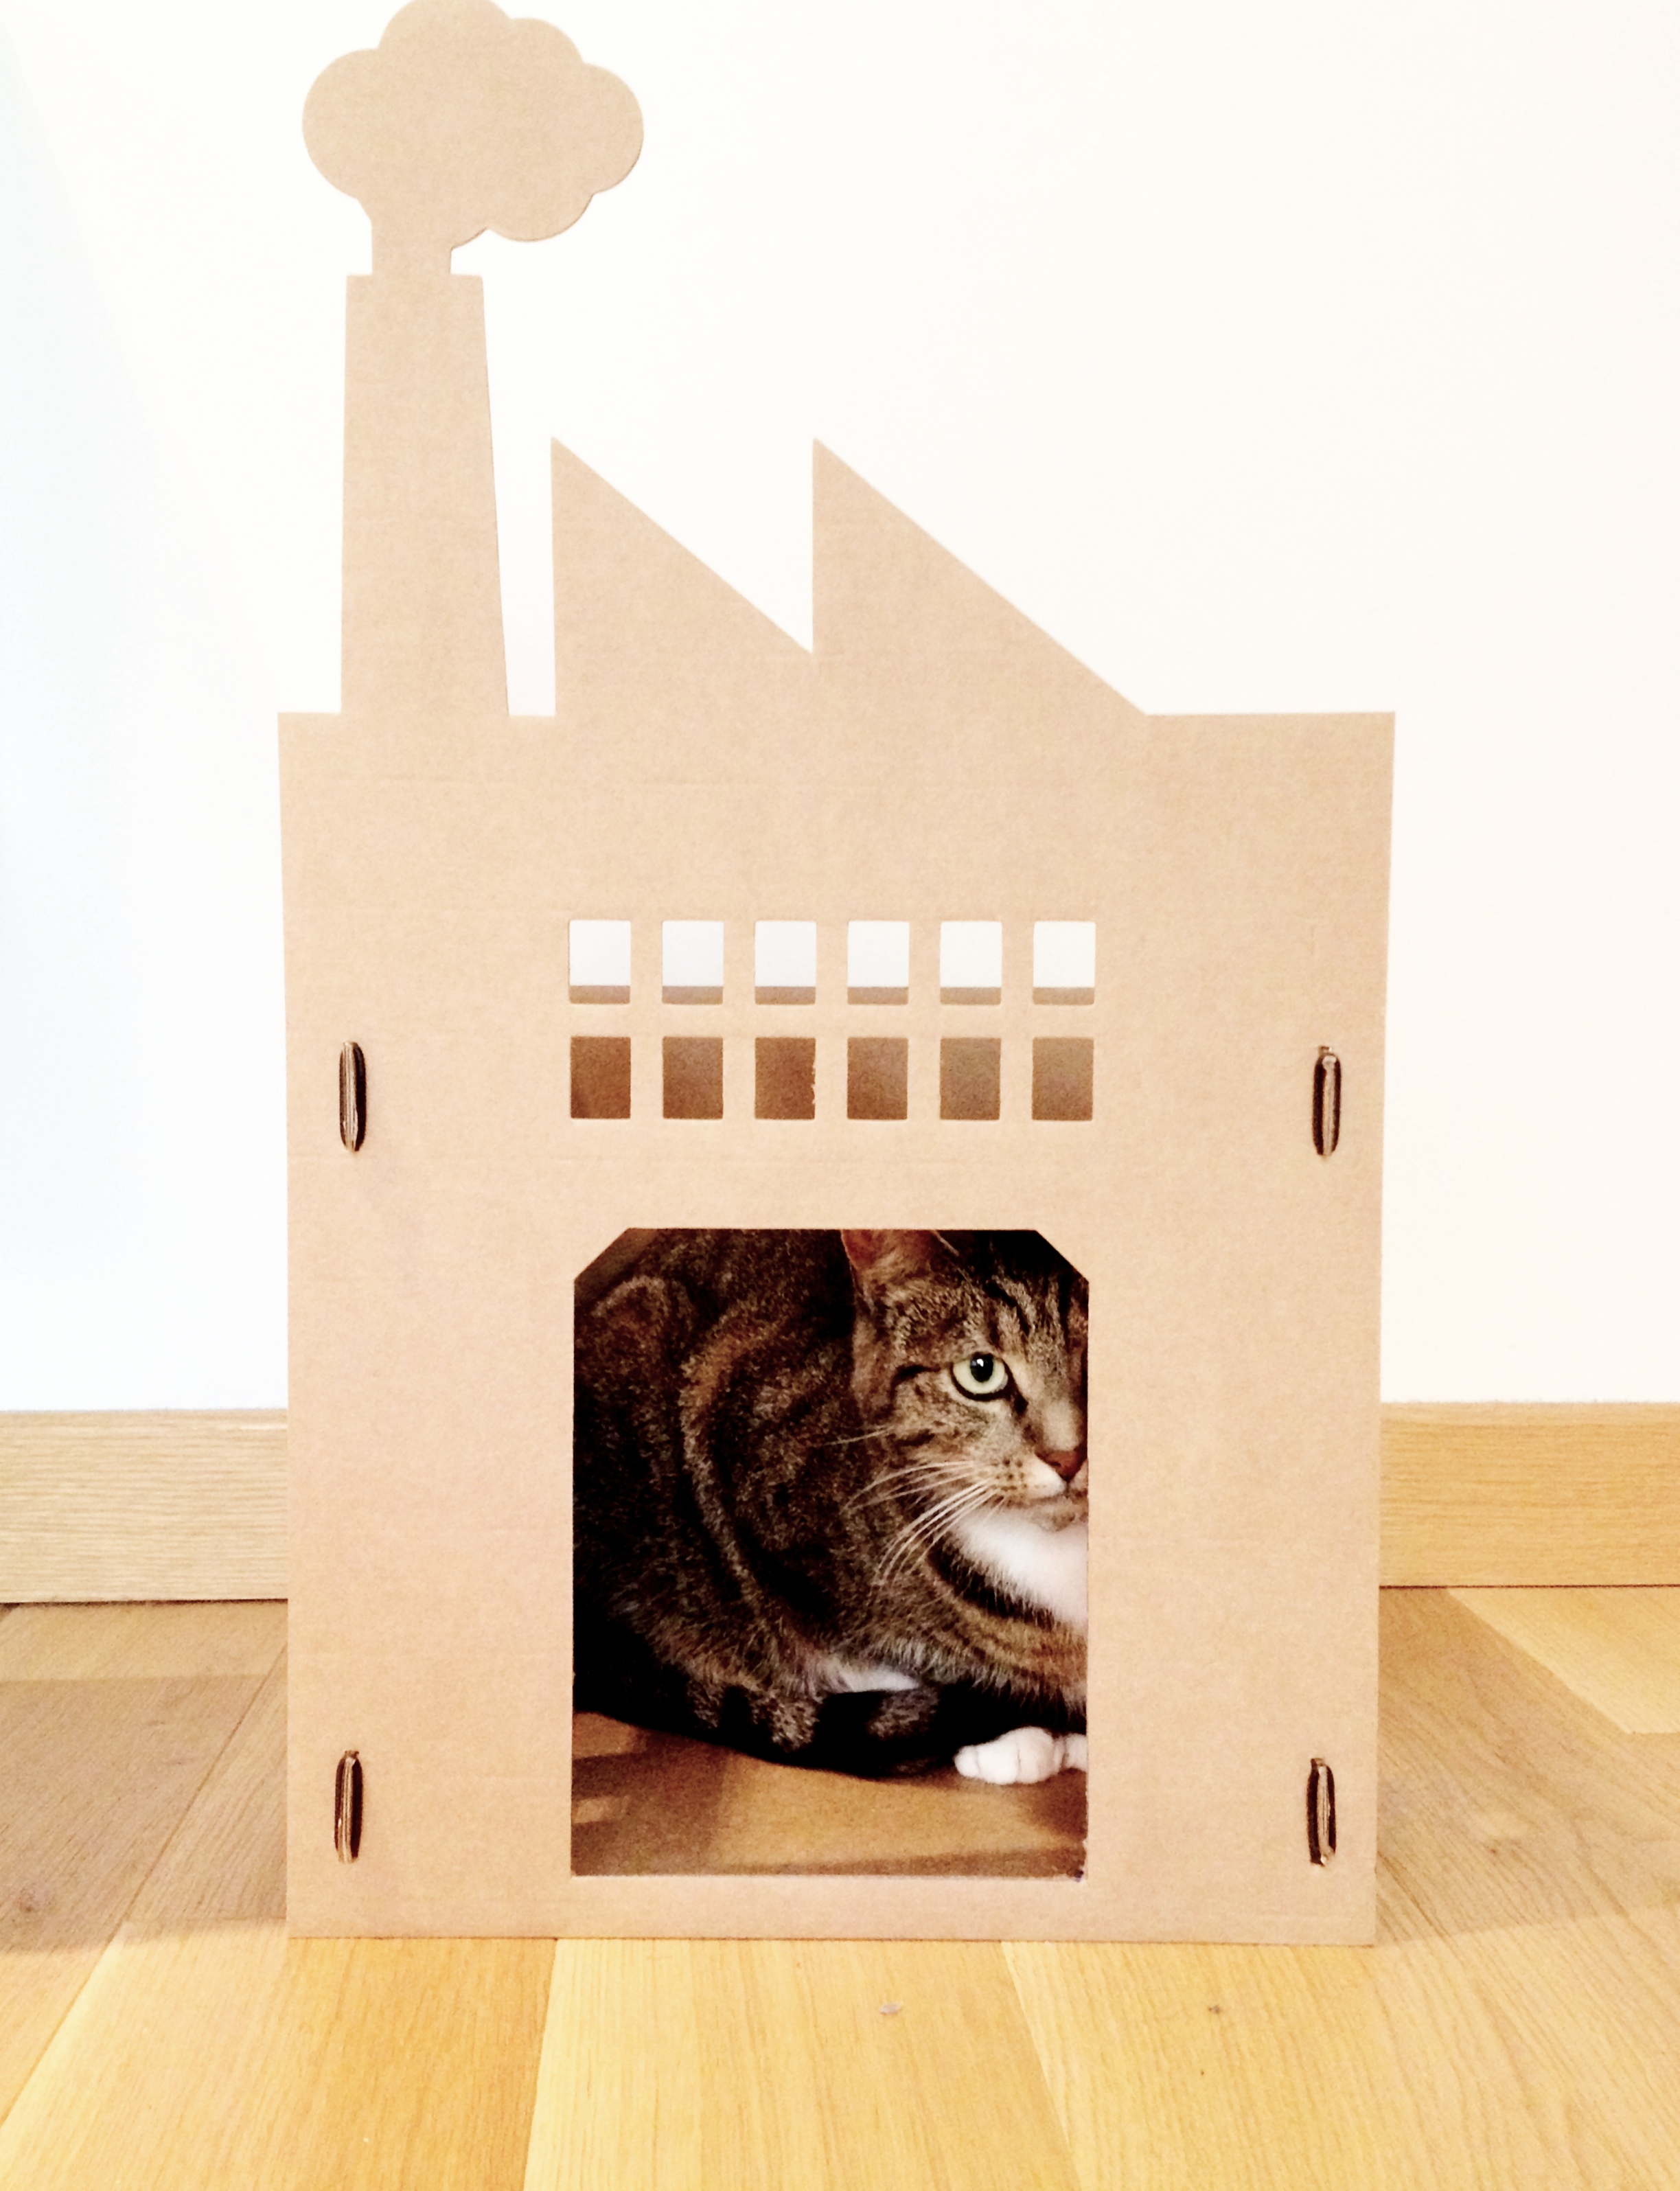 DIY Cardboard Cat House Plans PDF Download diy wood frame house layout ...